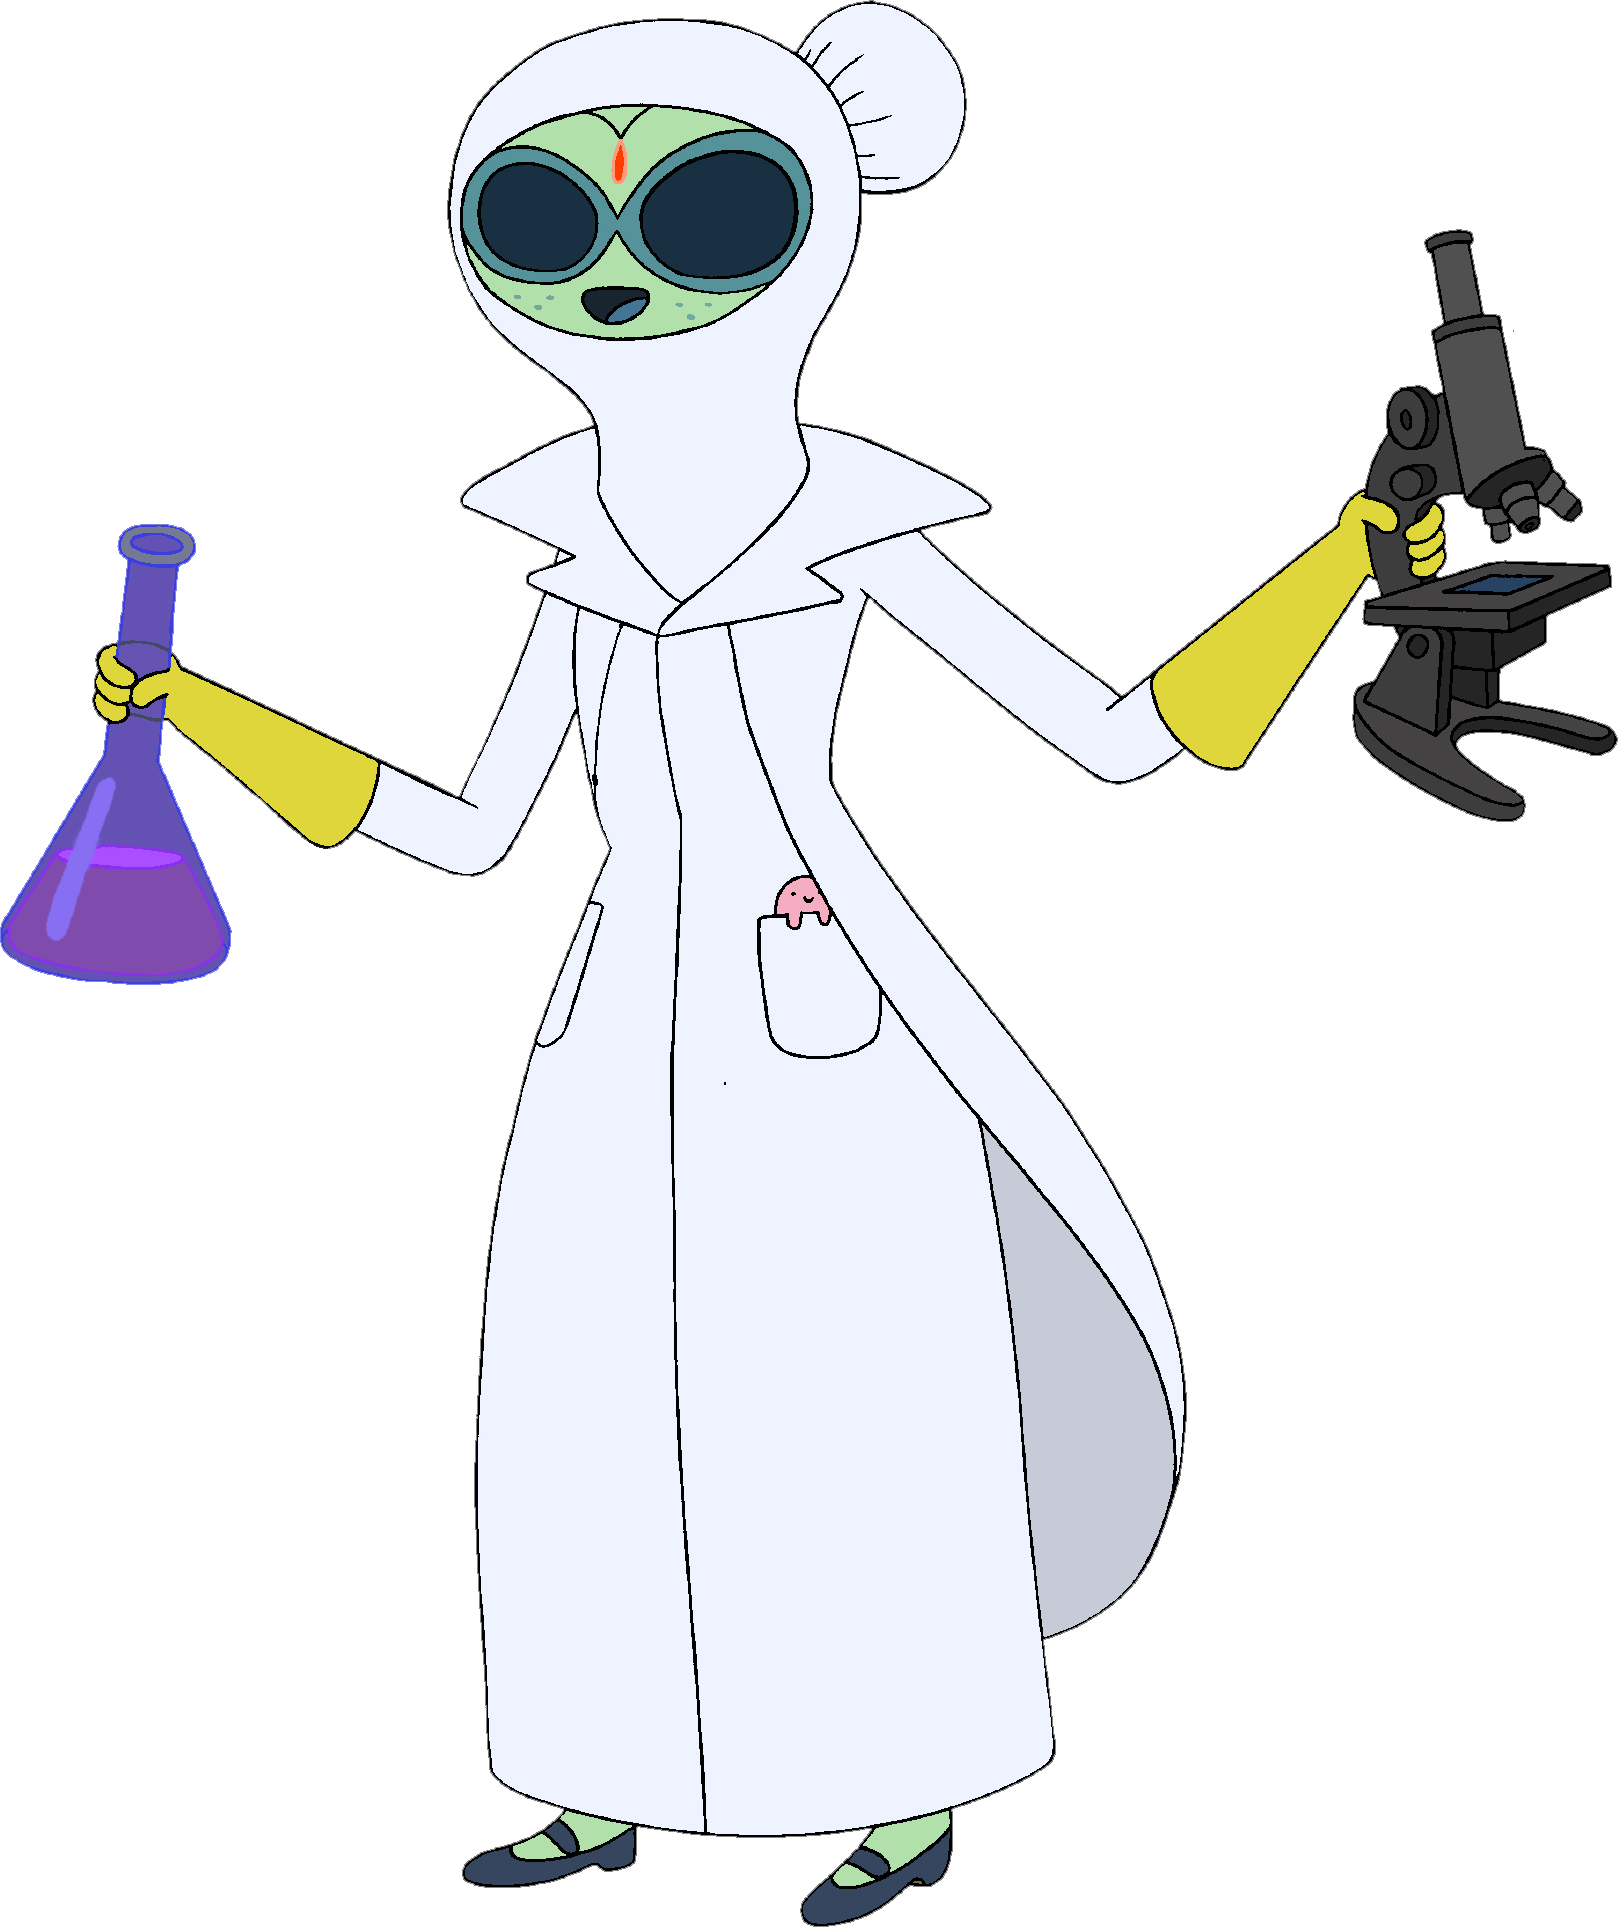 Doctors clipart scientist. Doctor princess adventure time